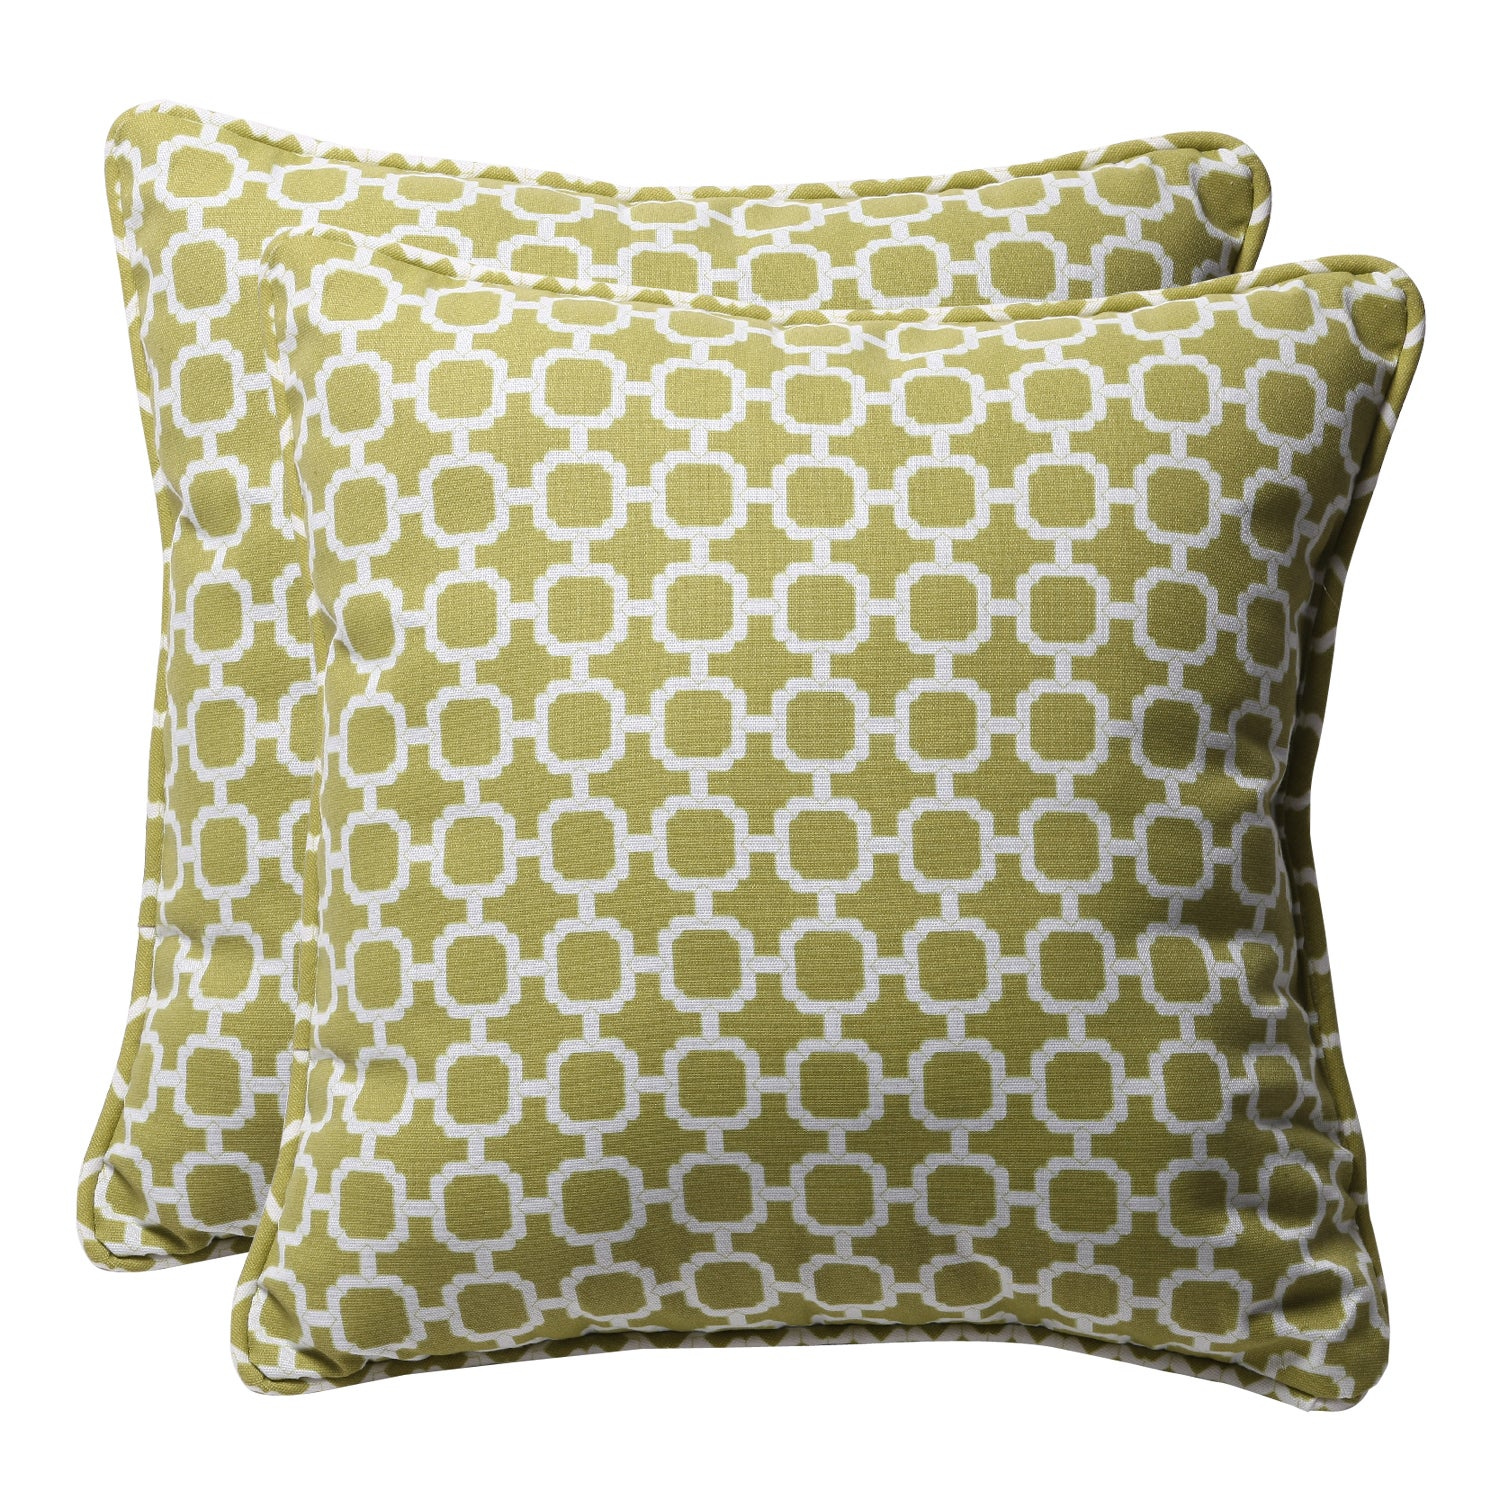 Decorative Green/ White Geometric Square Outdoor Toss Pillows (Set of 2)